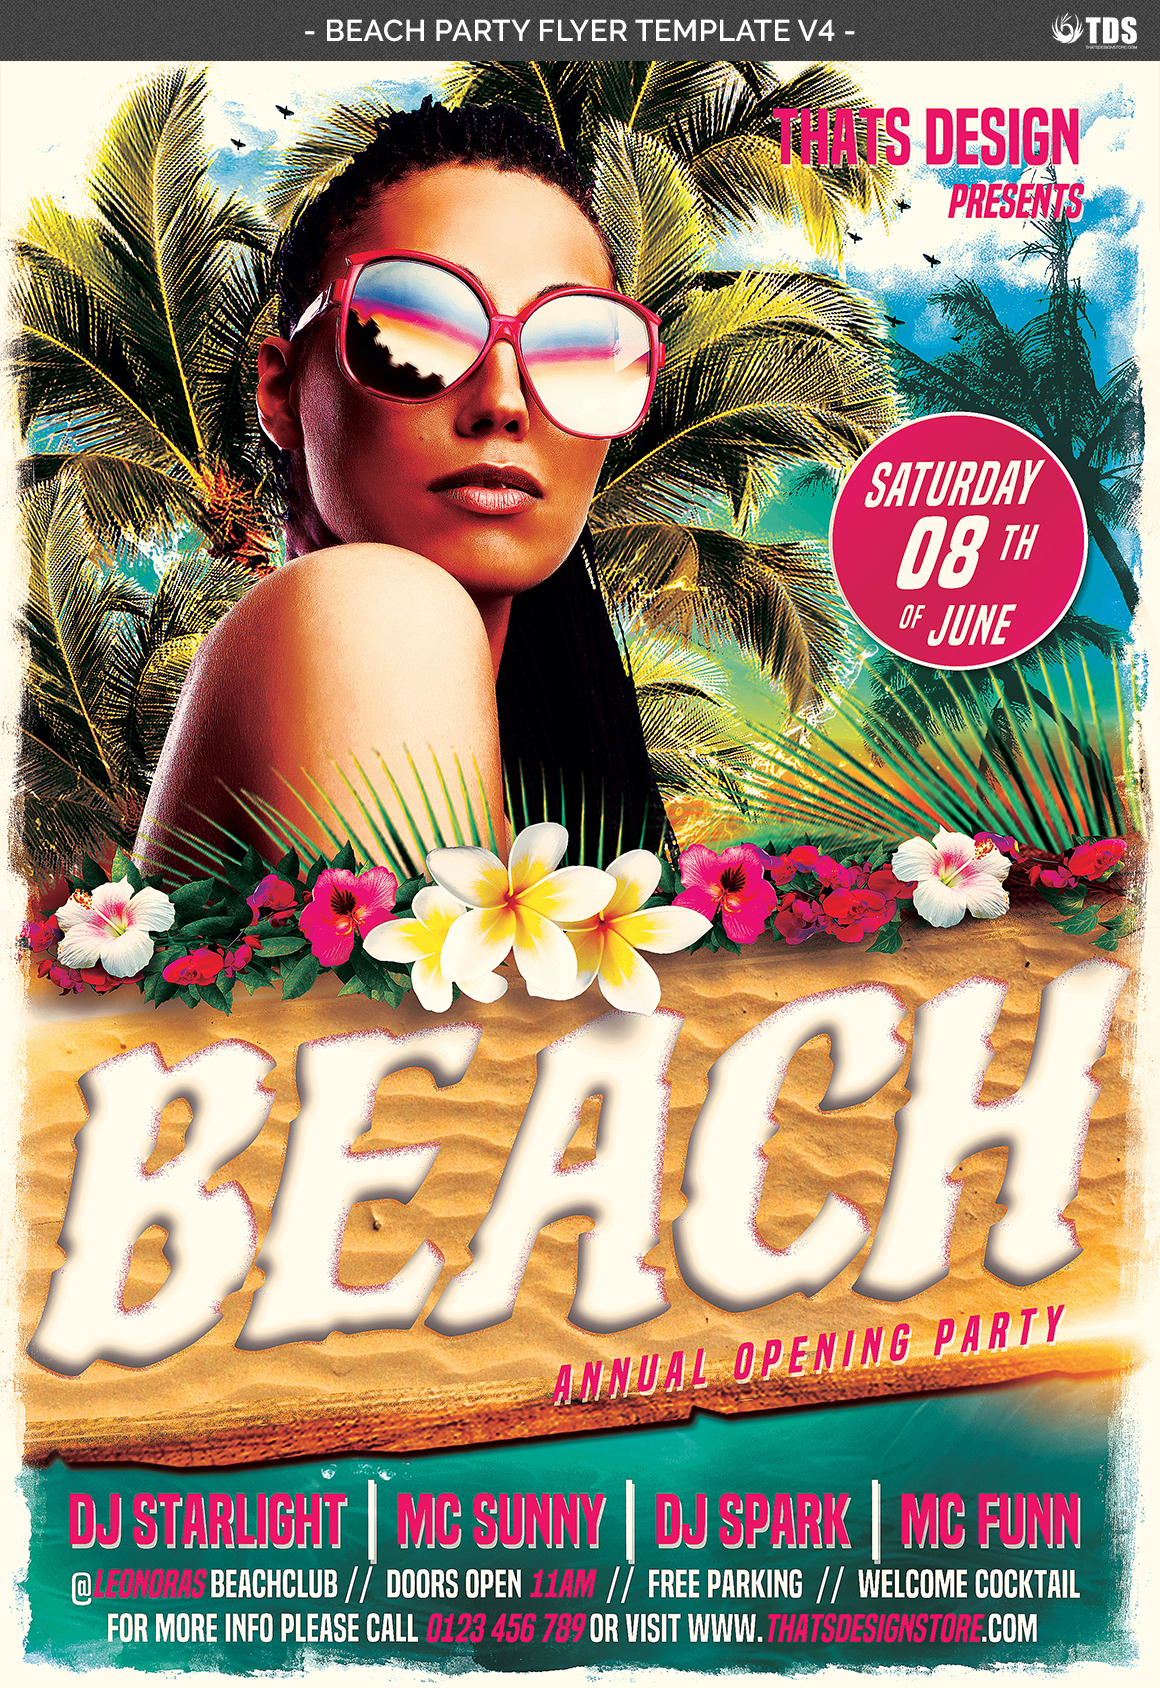 Beach Party Flyer Template V4 example image 4